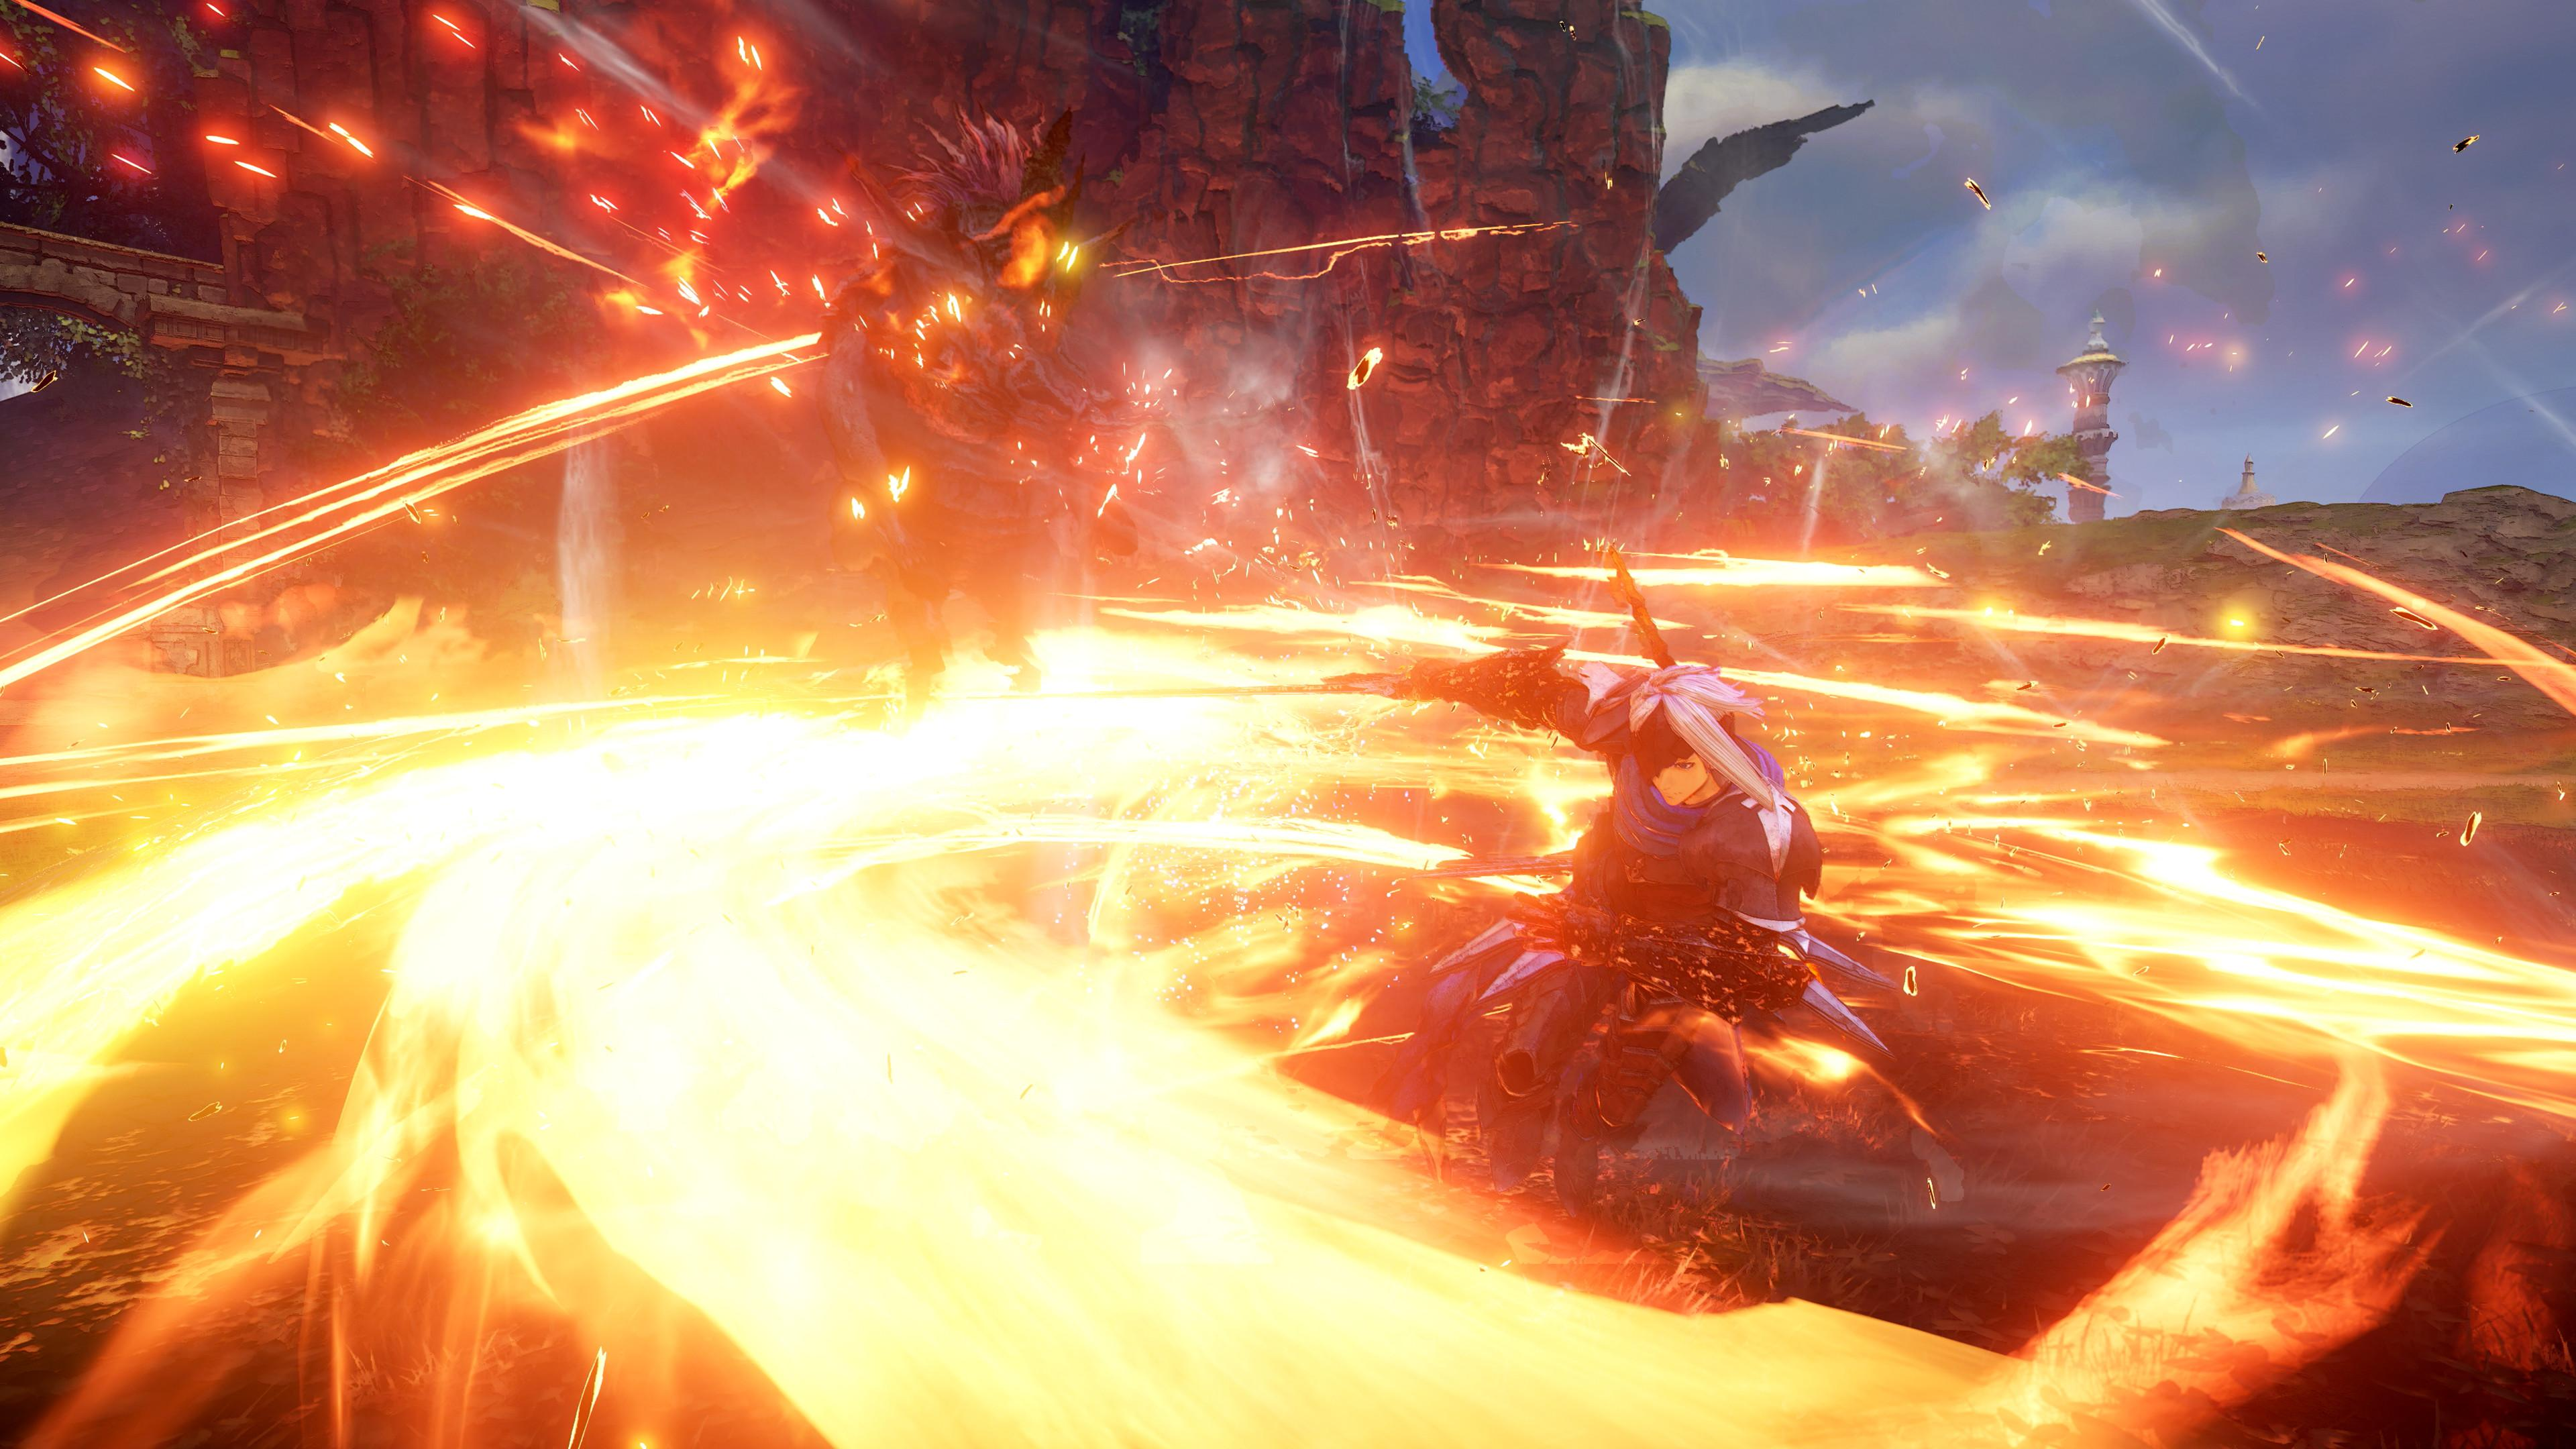 Alphen in Tales of Arise uses swift swordplay mixed with elemental attacks to deal massive damage